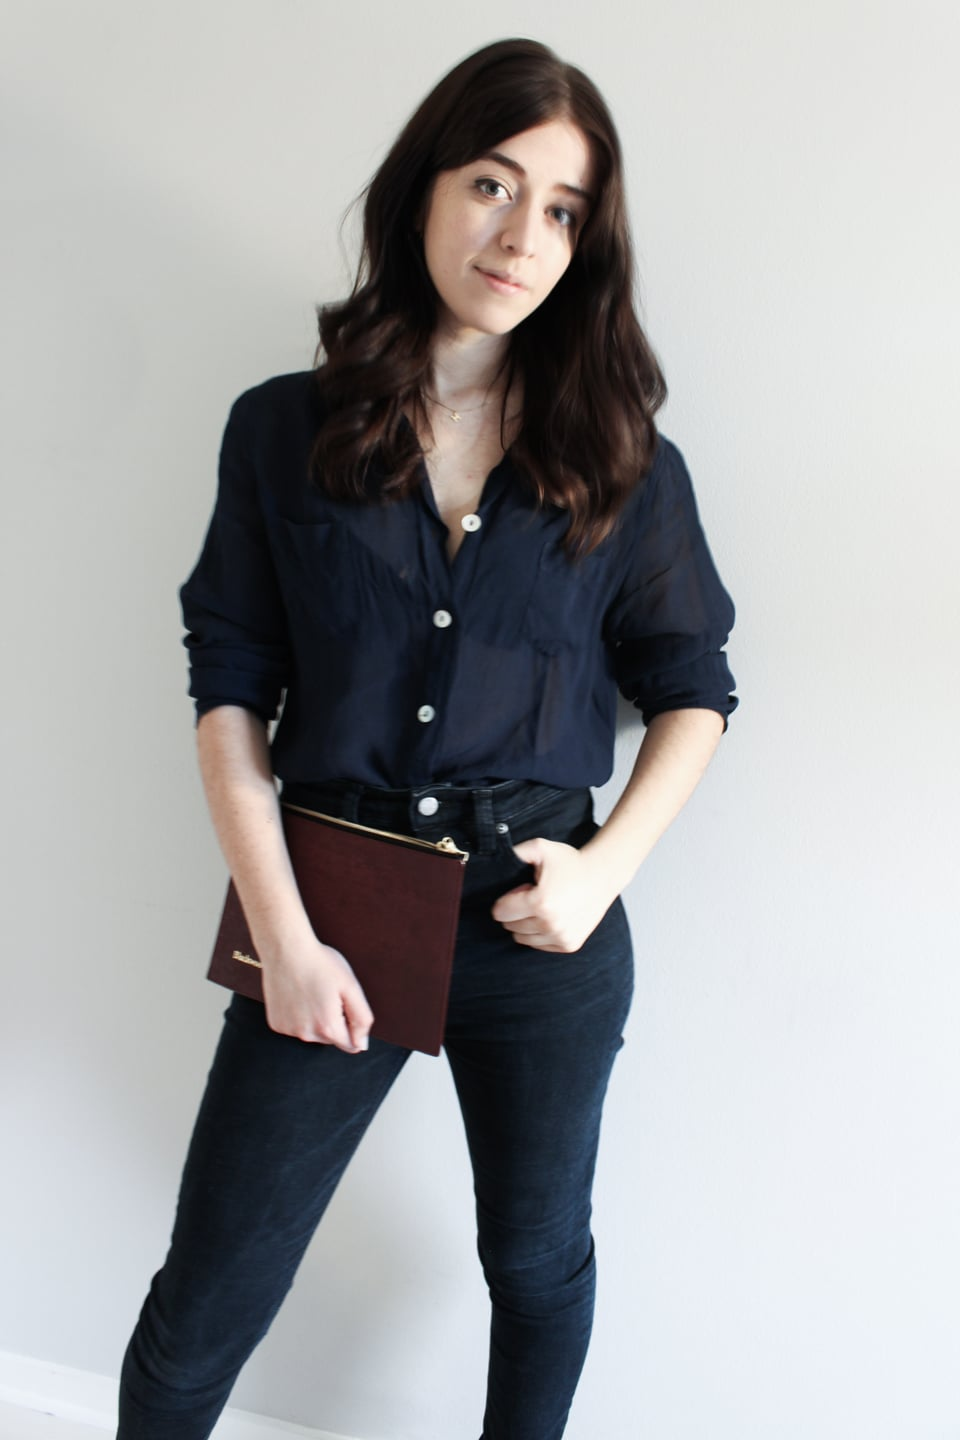 Besma wears second-hand top, sustainable Nudie jeans, vegan leather clutch